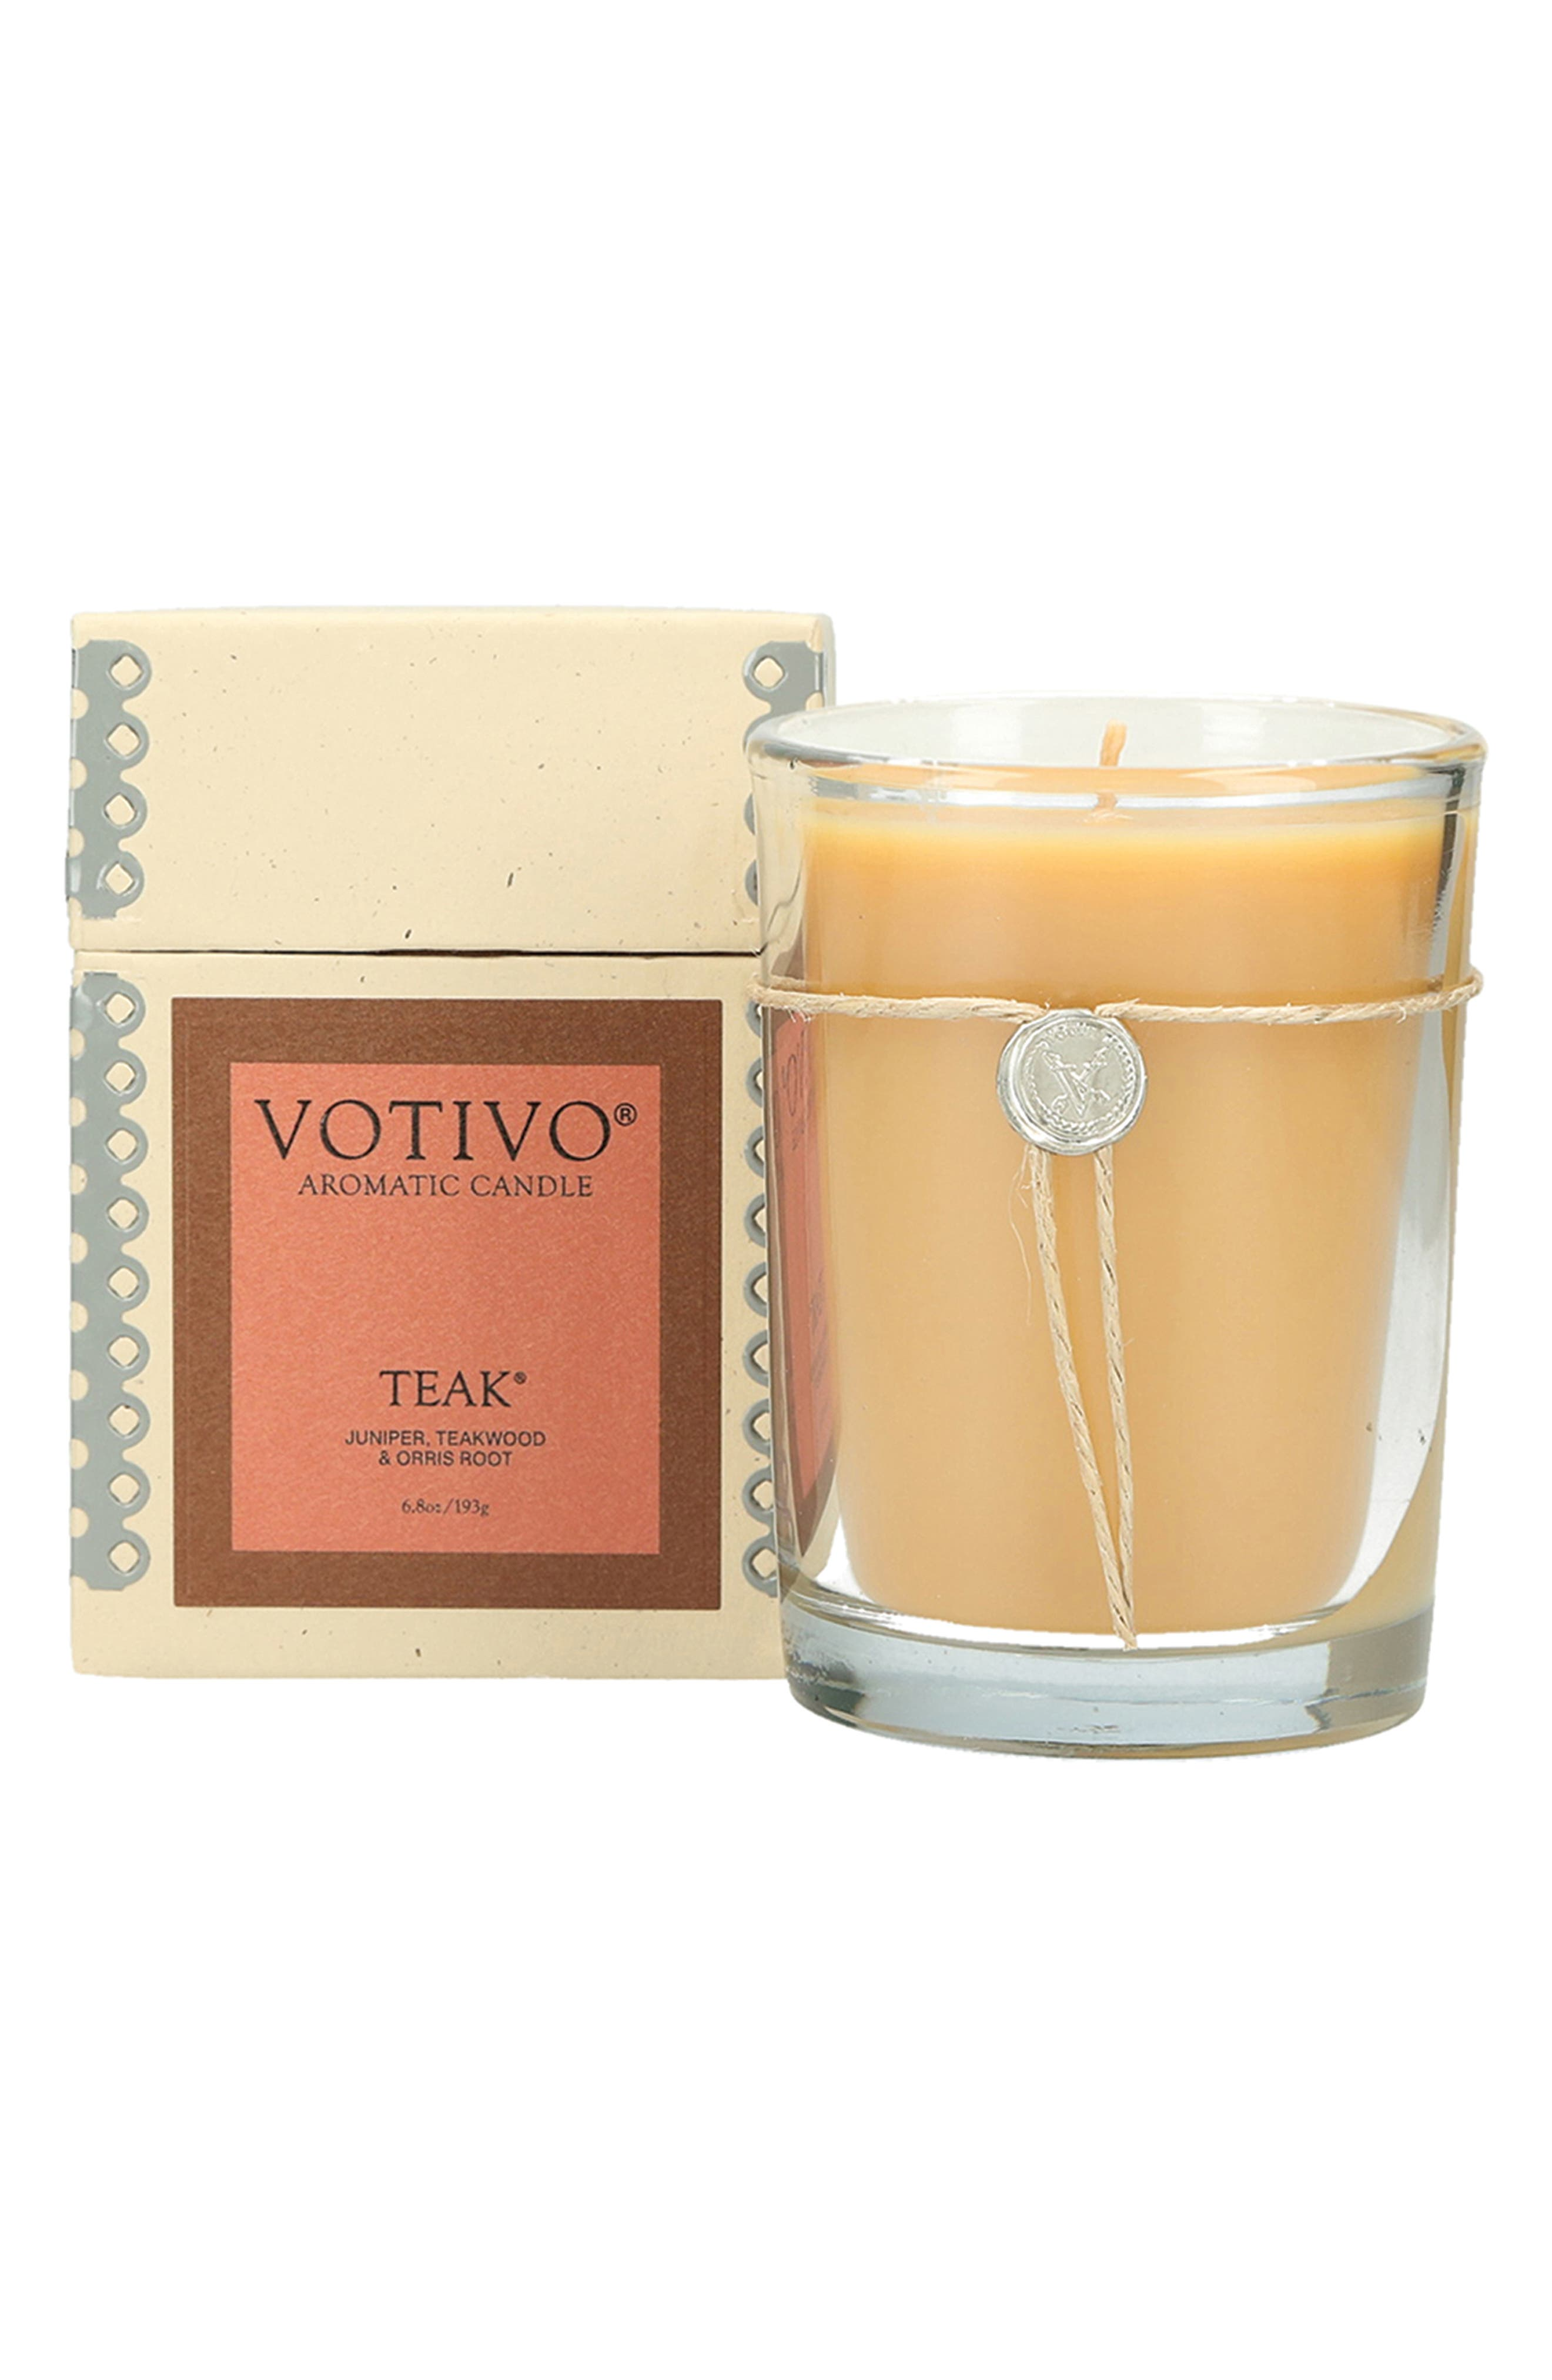 An elegant candle presented in a glass vessel with a soy wax blend fills any room in your home with beautiful scent. White Iris: A fresh scent with notes of bergamot, yiang, lily, violet, rose, iris, vetiver, benzoin and musk. Red Currant: A fresh scent with notes of citrus, cassis, geranium, earthy green and fruity musk. Honeysuckle: A fresh fragrance with notes of citrus, dey greens, wild honeysuckle, jasmine, orange flower and floral musk. Grey